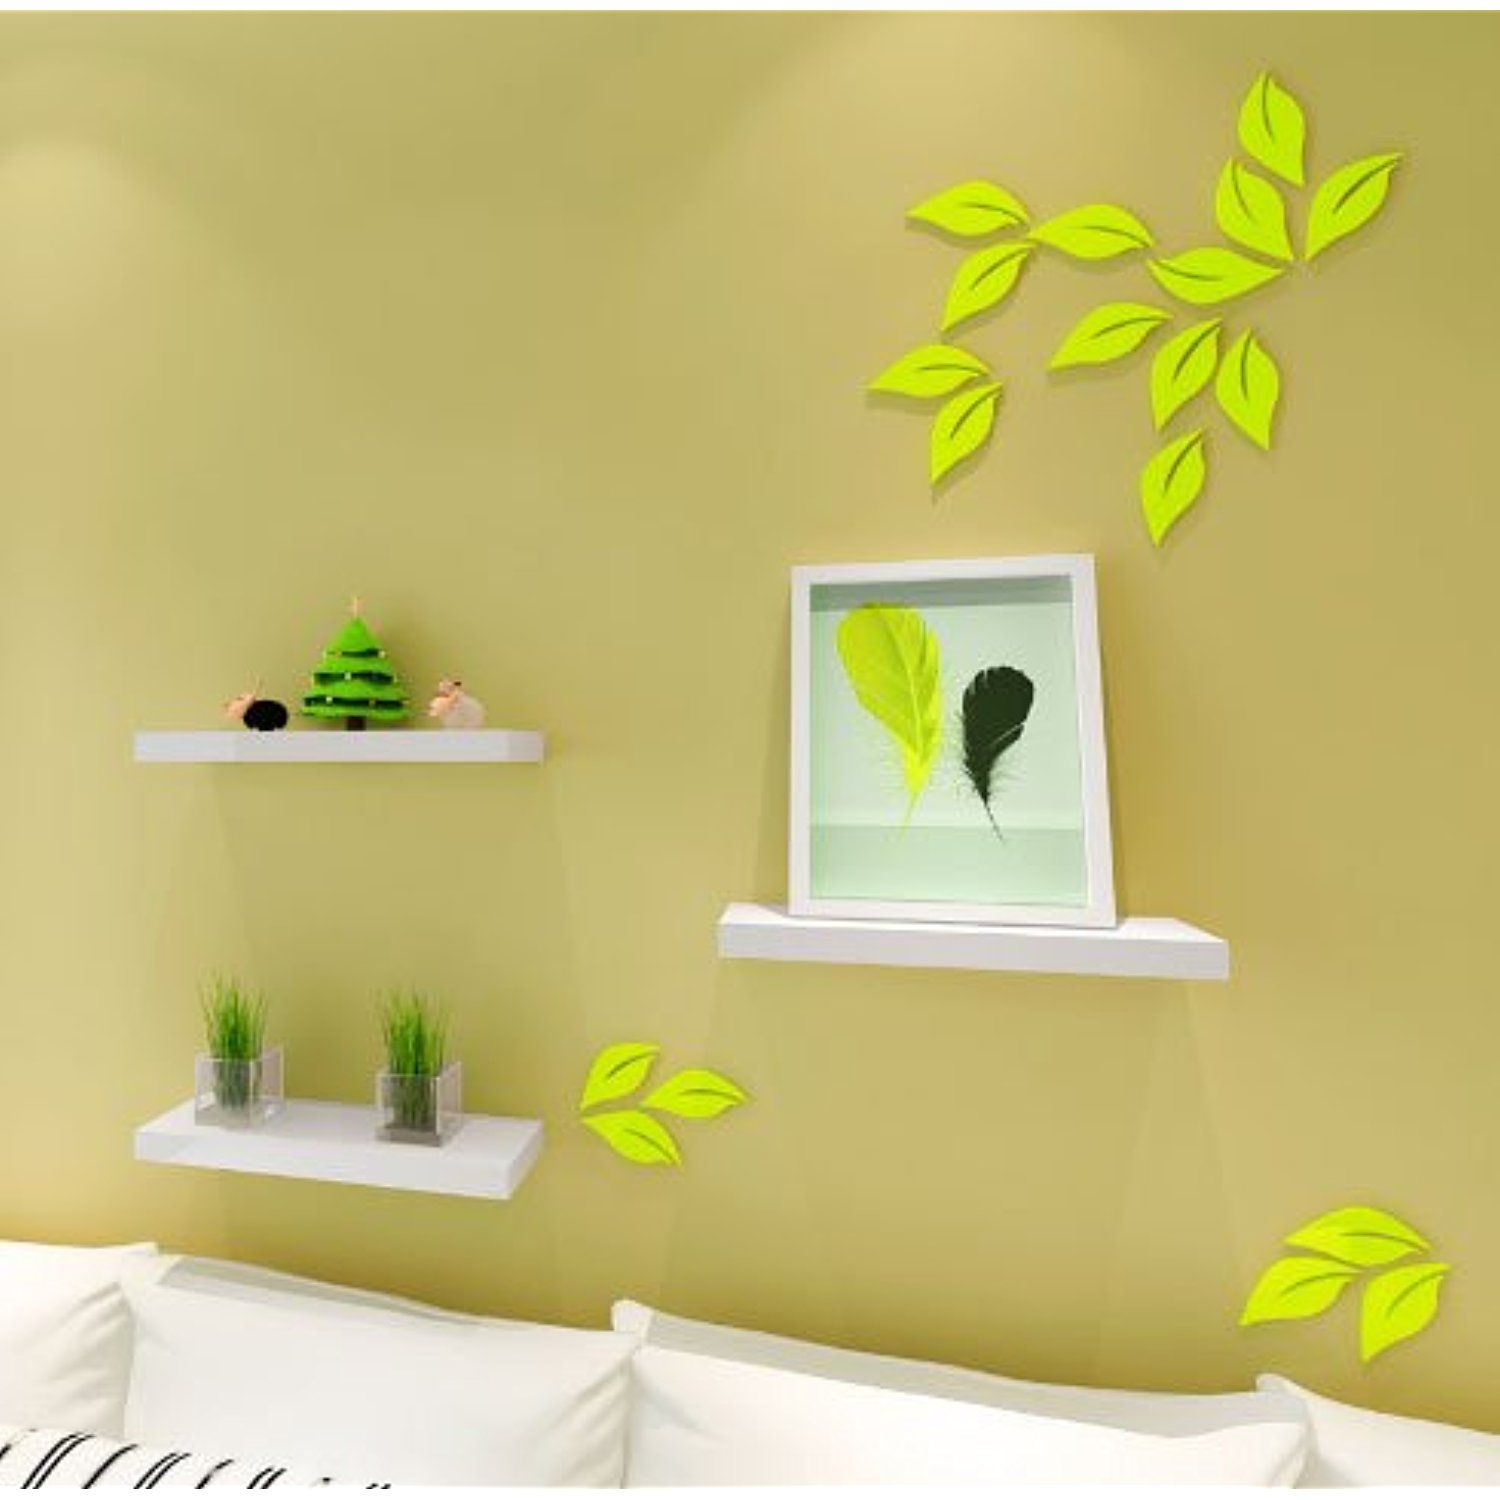 3D Leaves Wall Stickers, DIY Removable Wooden Leaf Wall Decor ...